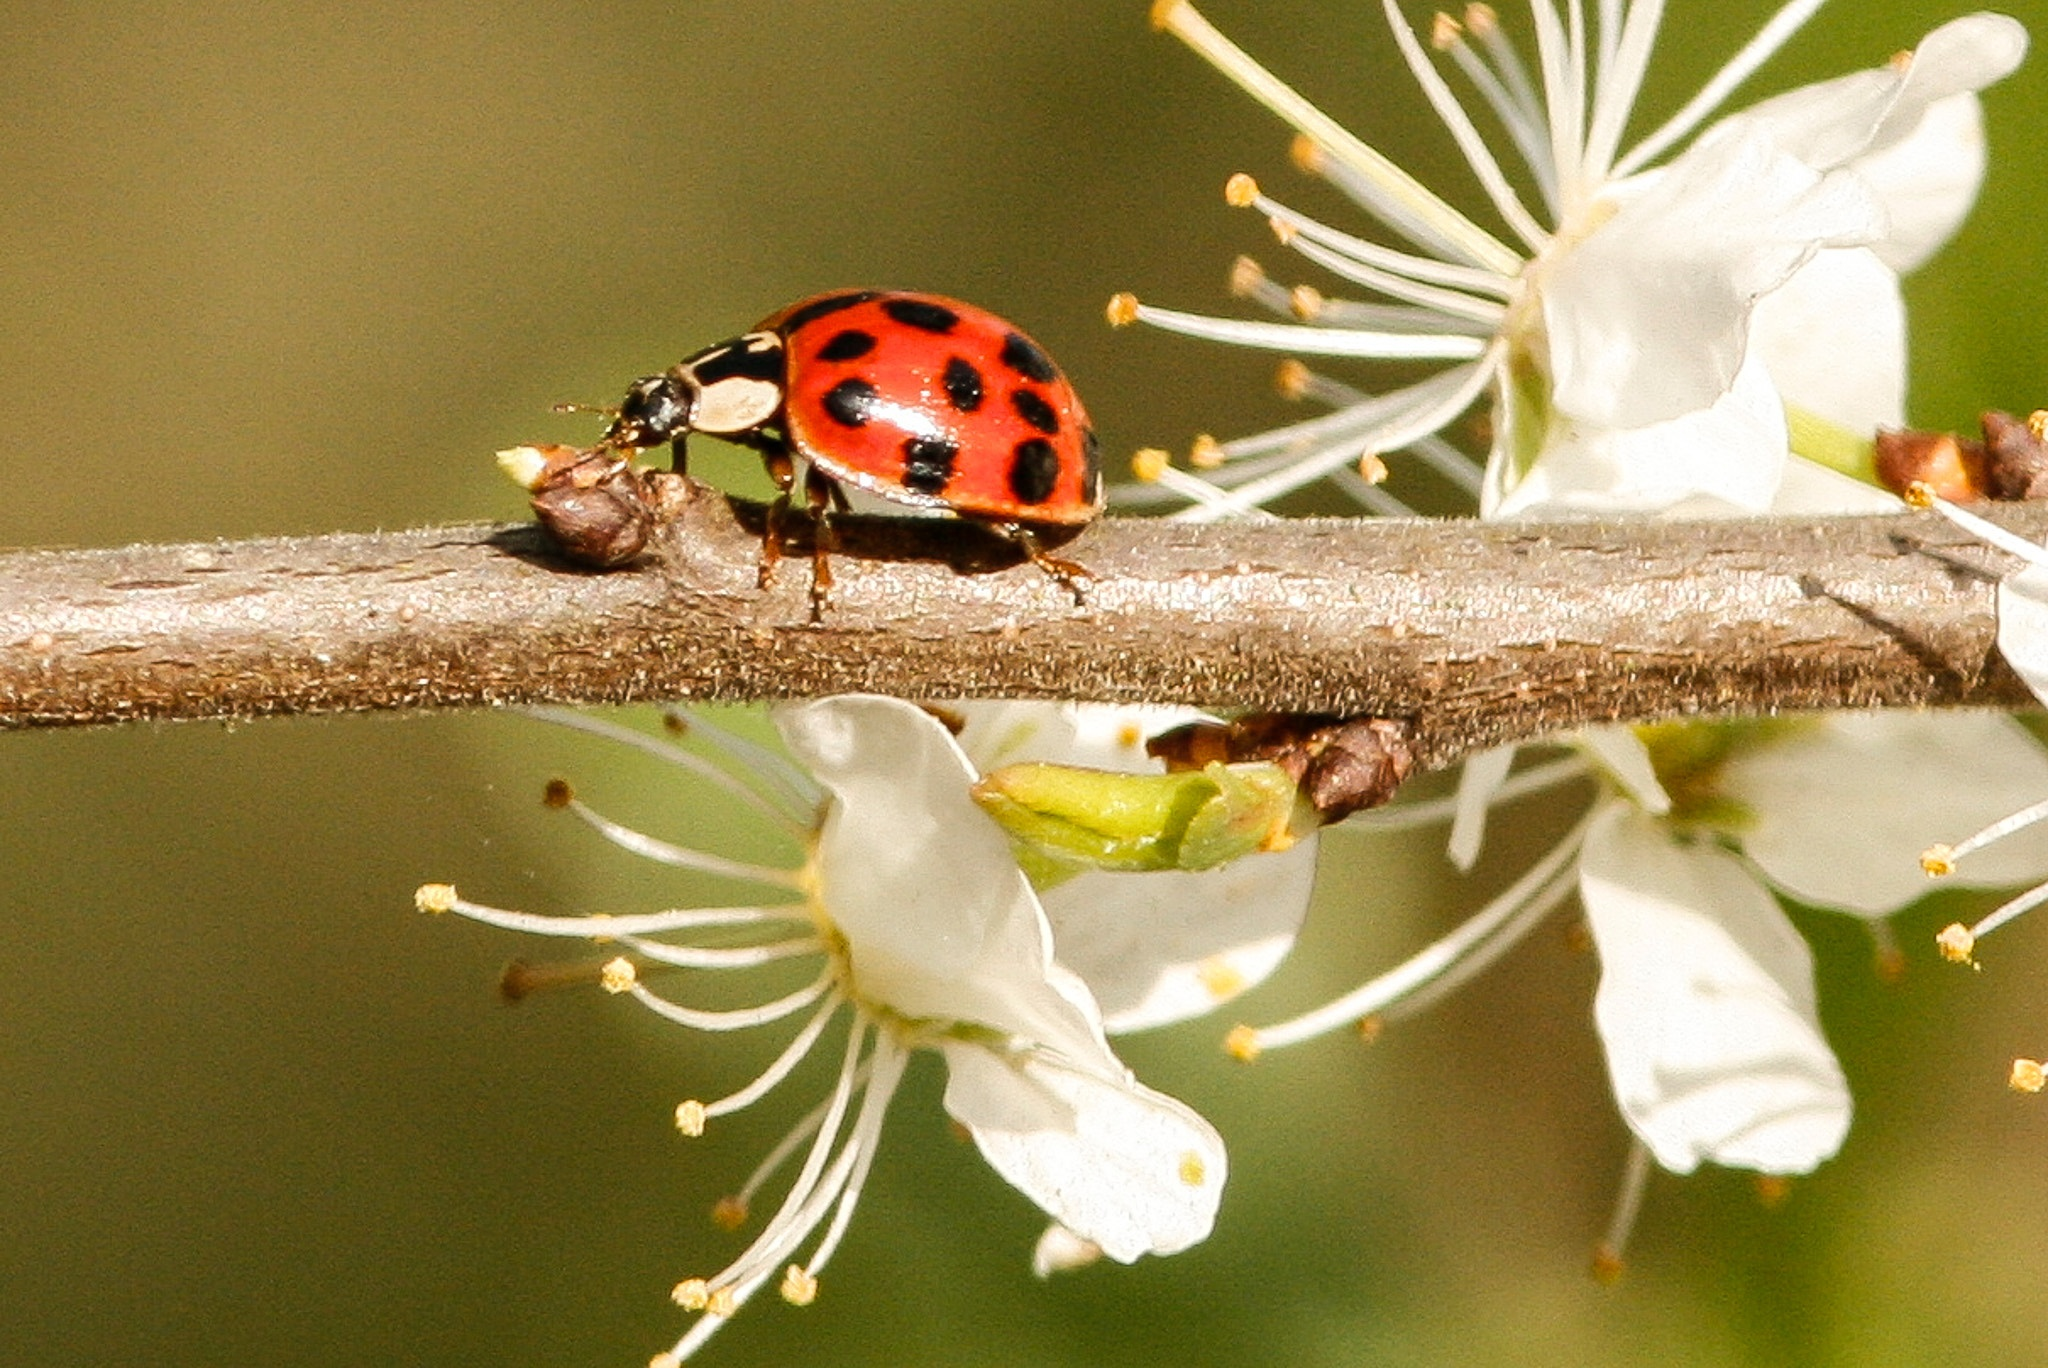 Ladybird by Paul Brown